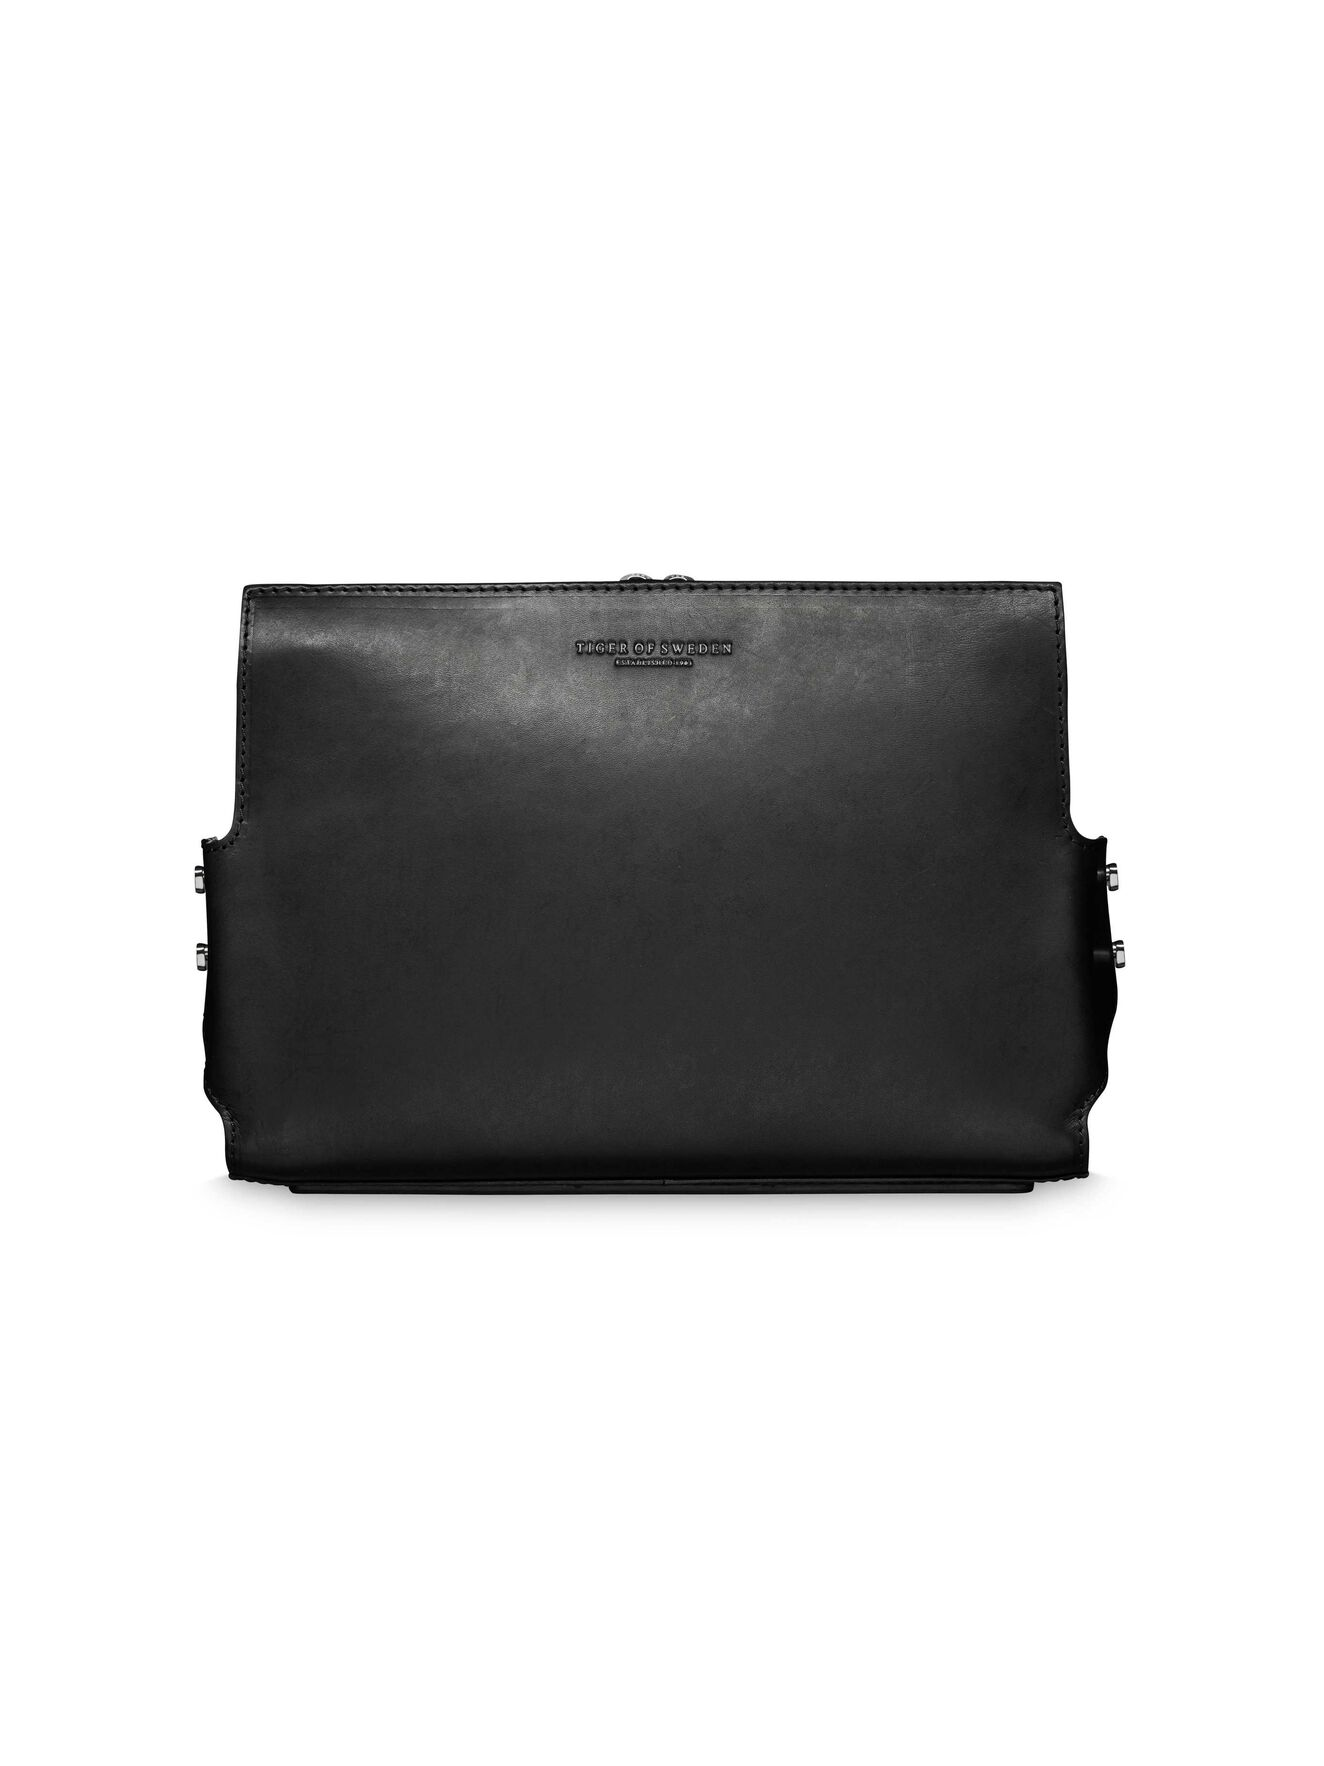 HORLEY TOILETRY BAG in Black from Tiger of Sweden